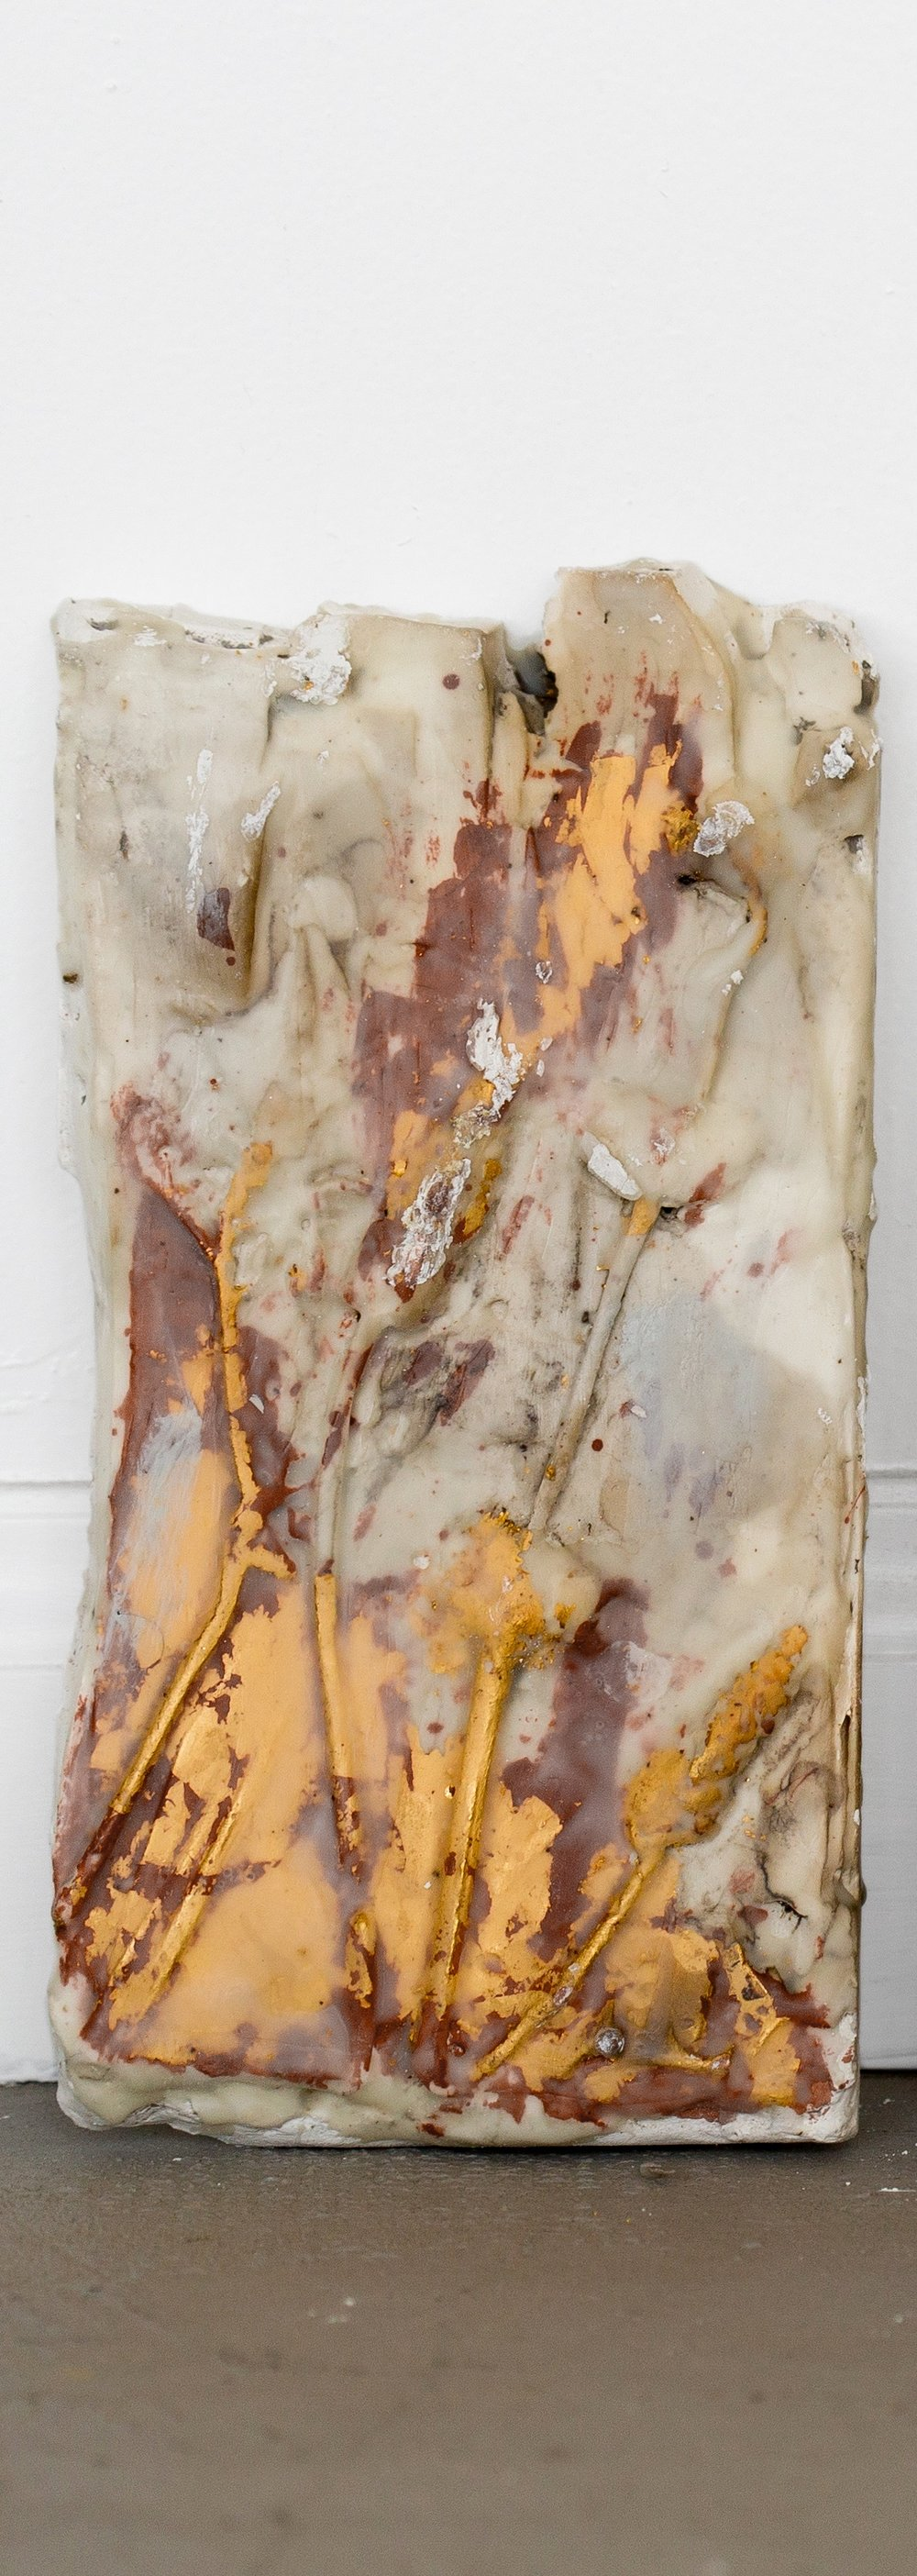 "Walk #1           9"" x 5 1/4""  Plaster, Encaustic Medium, Gold Leaf"